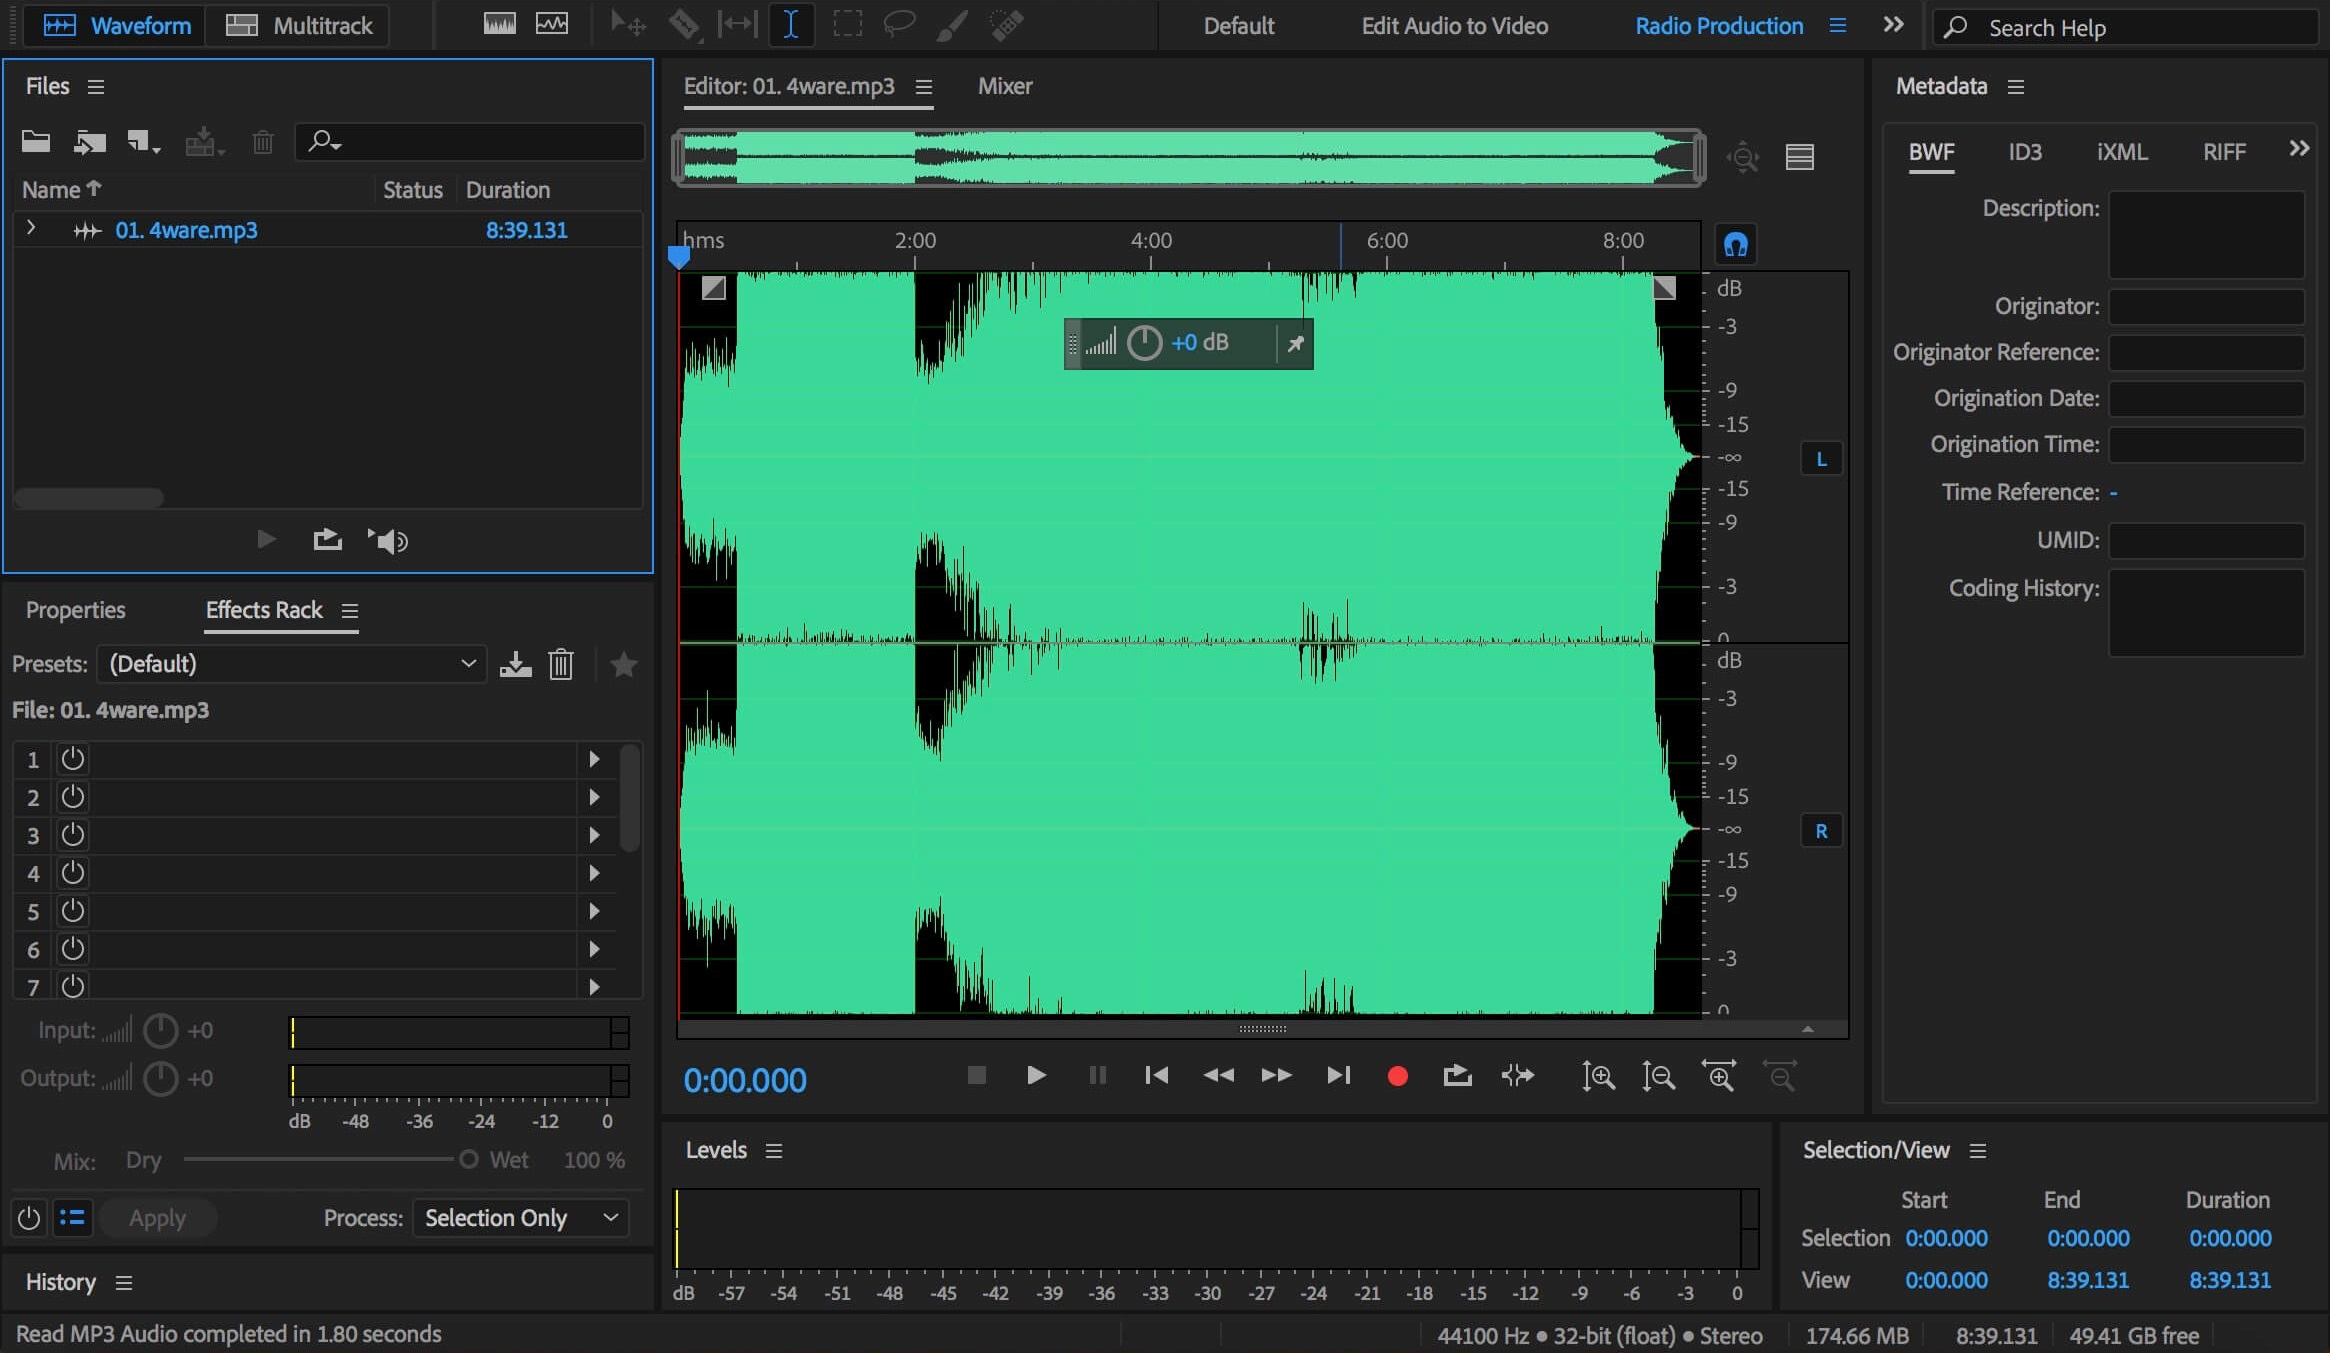 Adobe Audition CC 2018 multiple audio work